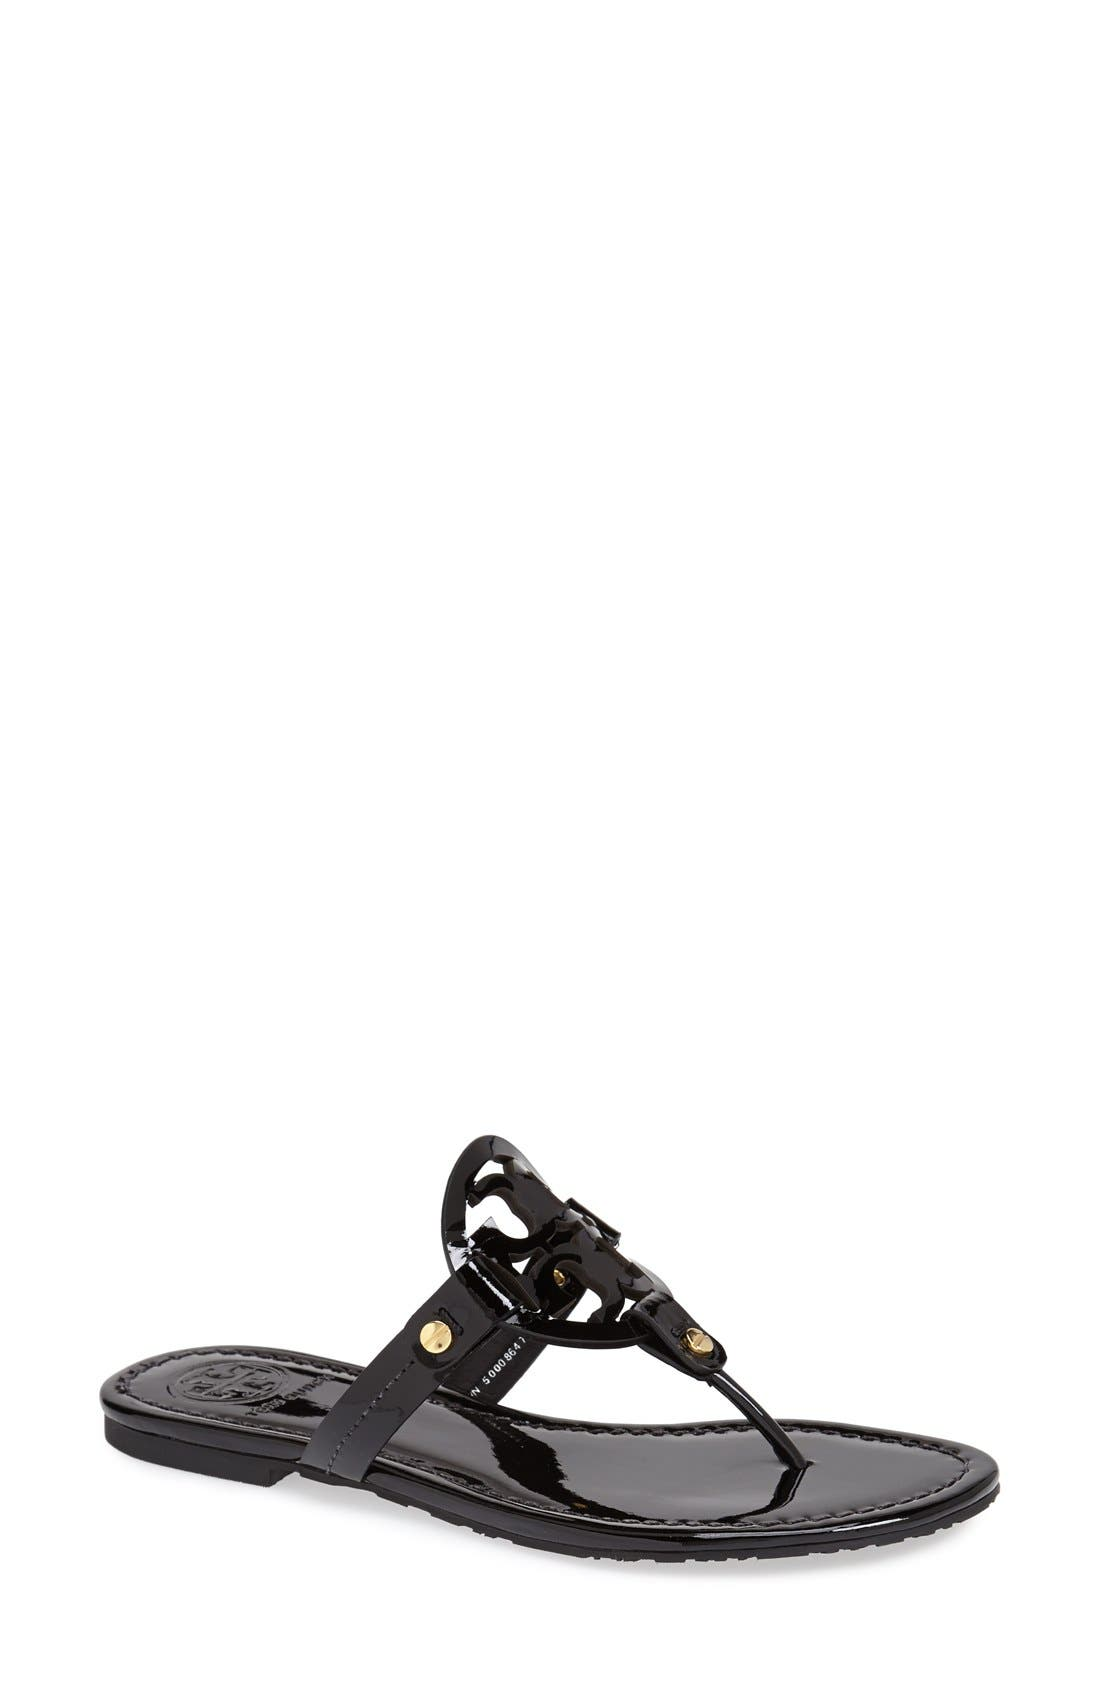 'Miller' Flip Flop,                             Main thumbnail 1, color,                             BLACK PATENT